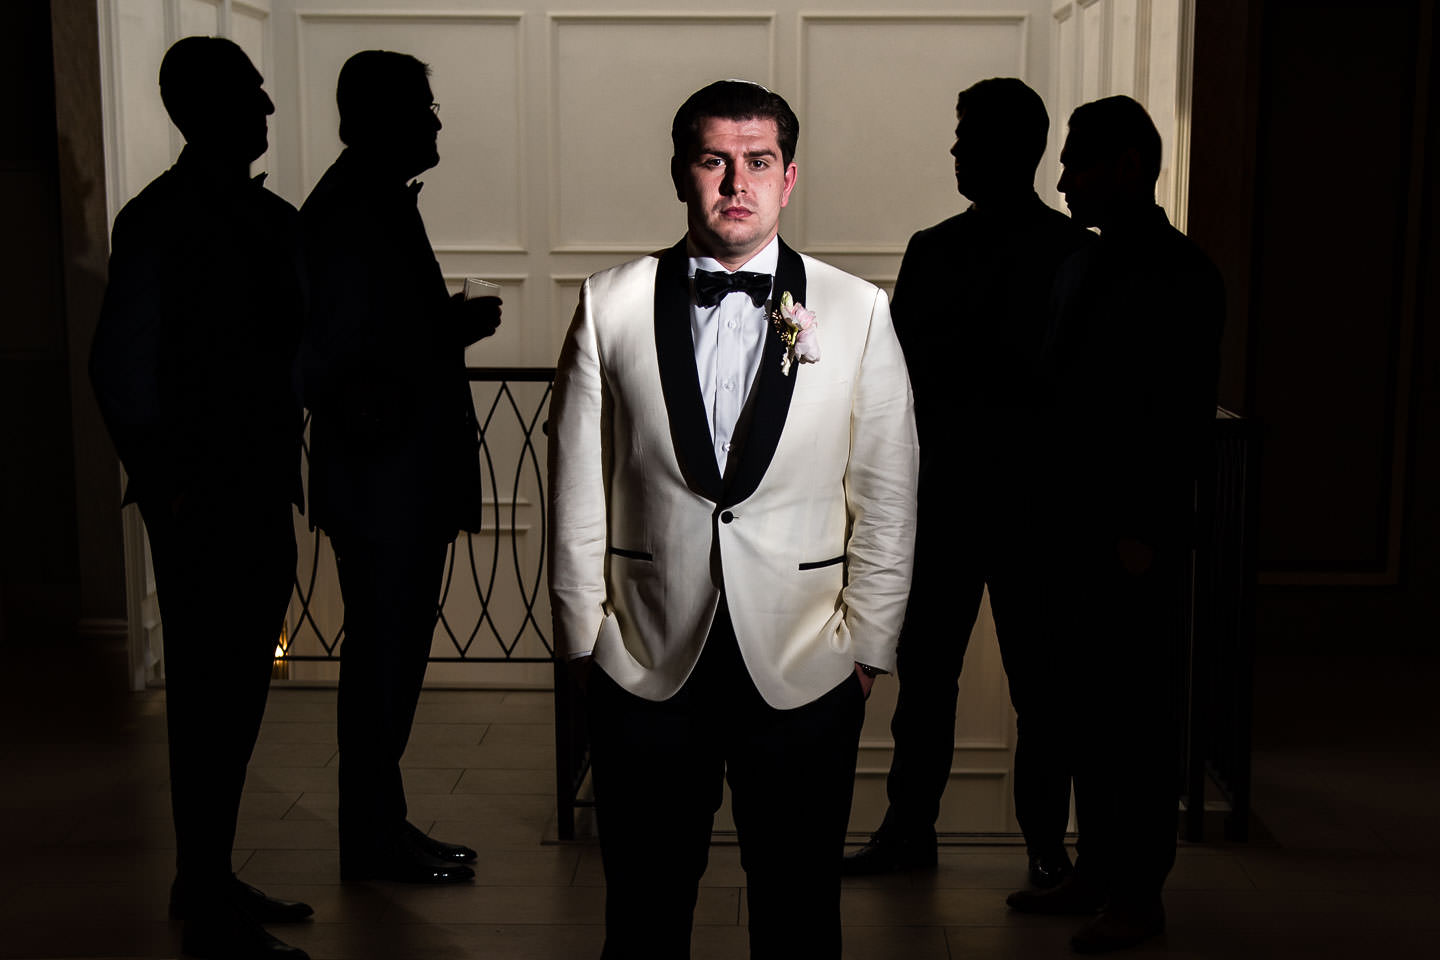 Metropolitan Ballroom Wedding in Brooklyn NY groom and groomsmen